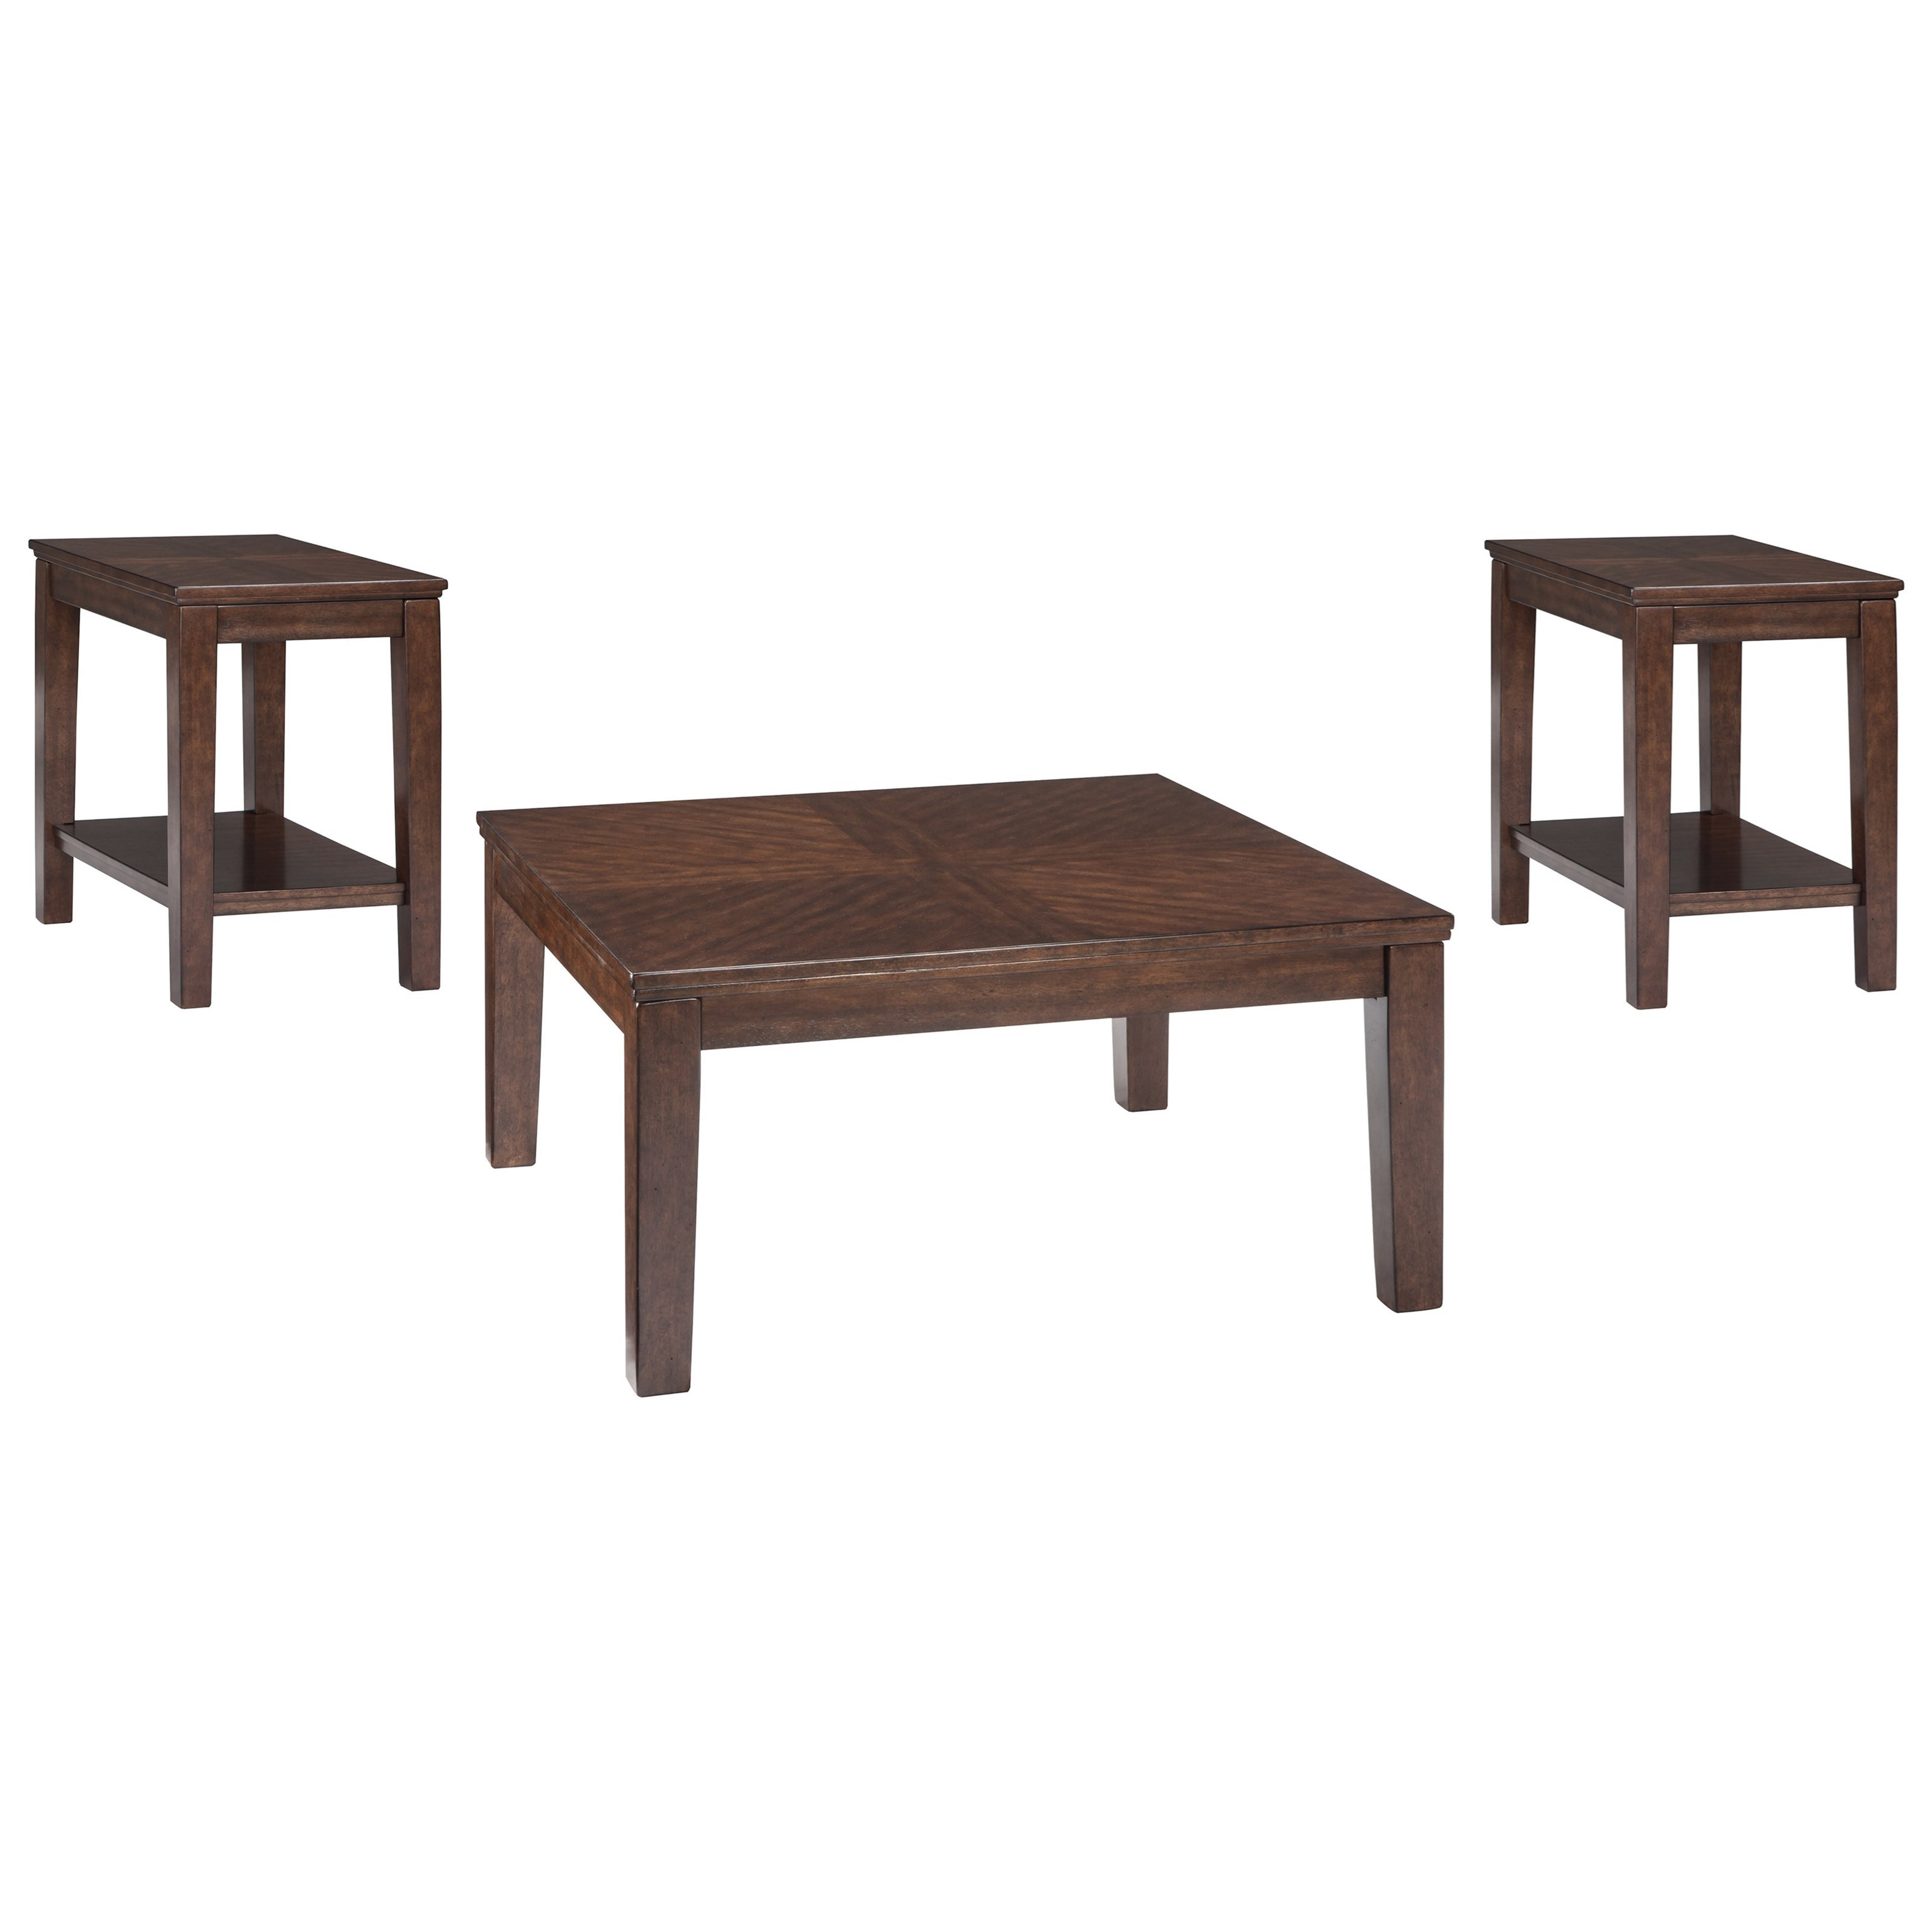 Signature design by ashley marlinton occasional table set for Occasional table manufacturers